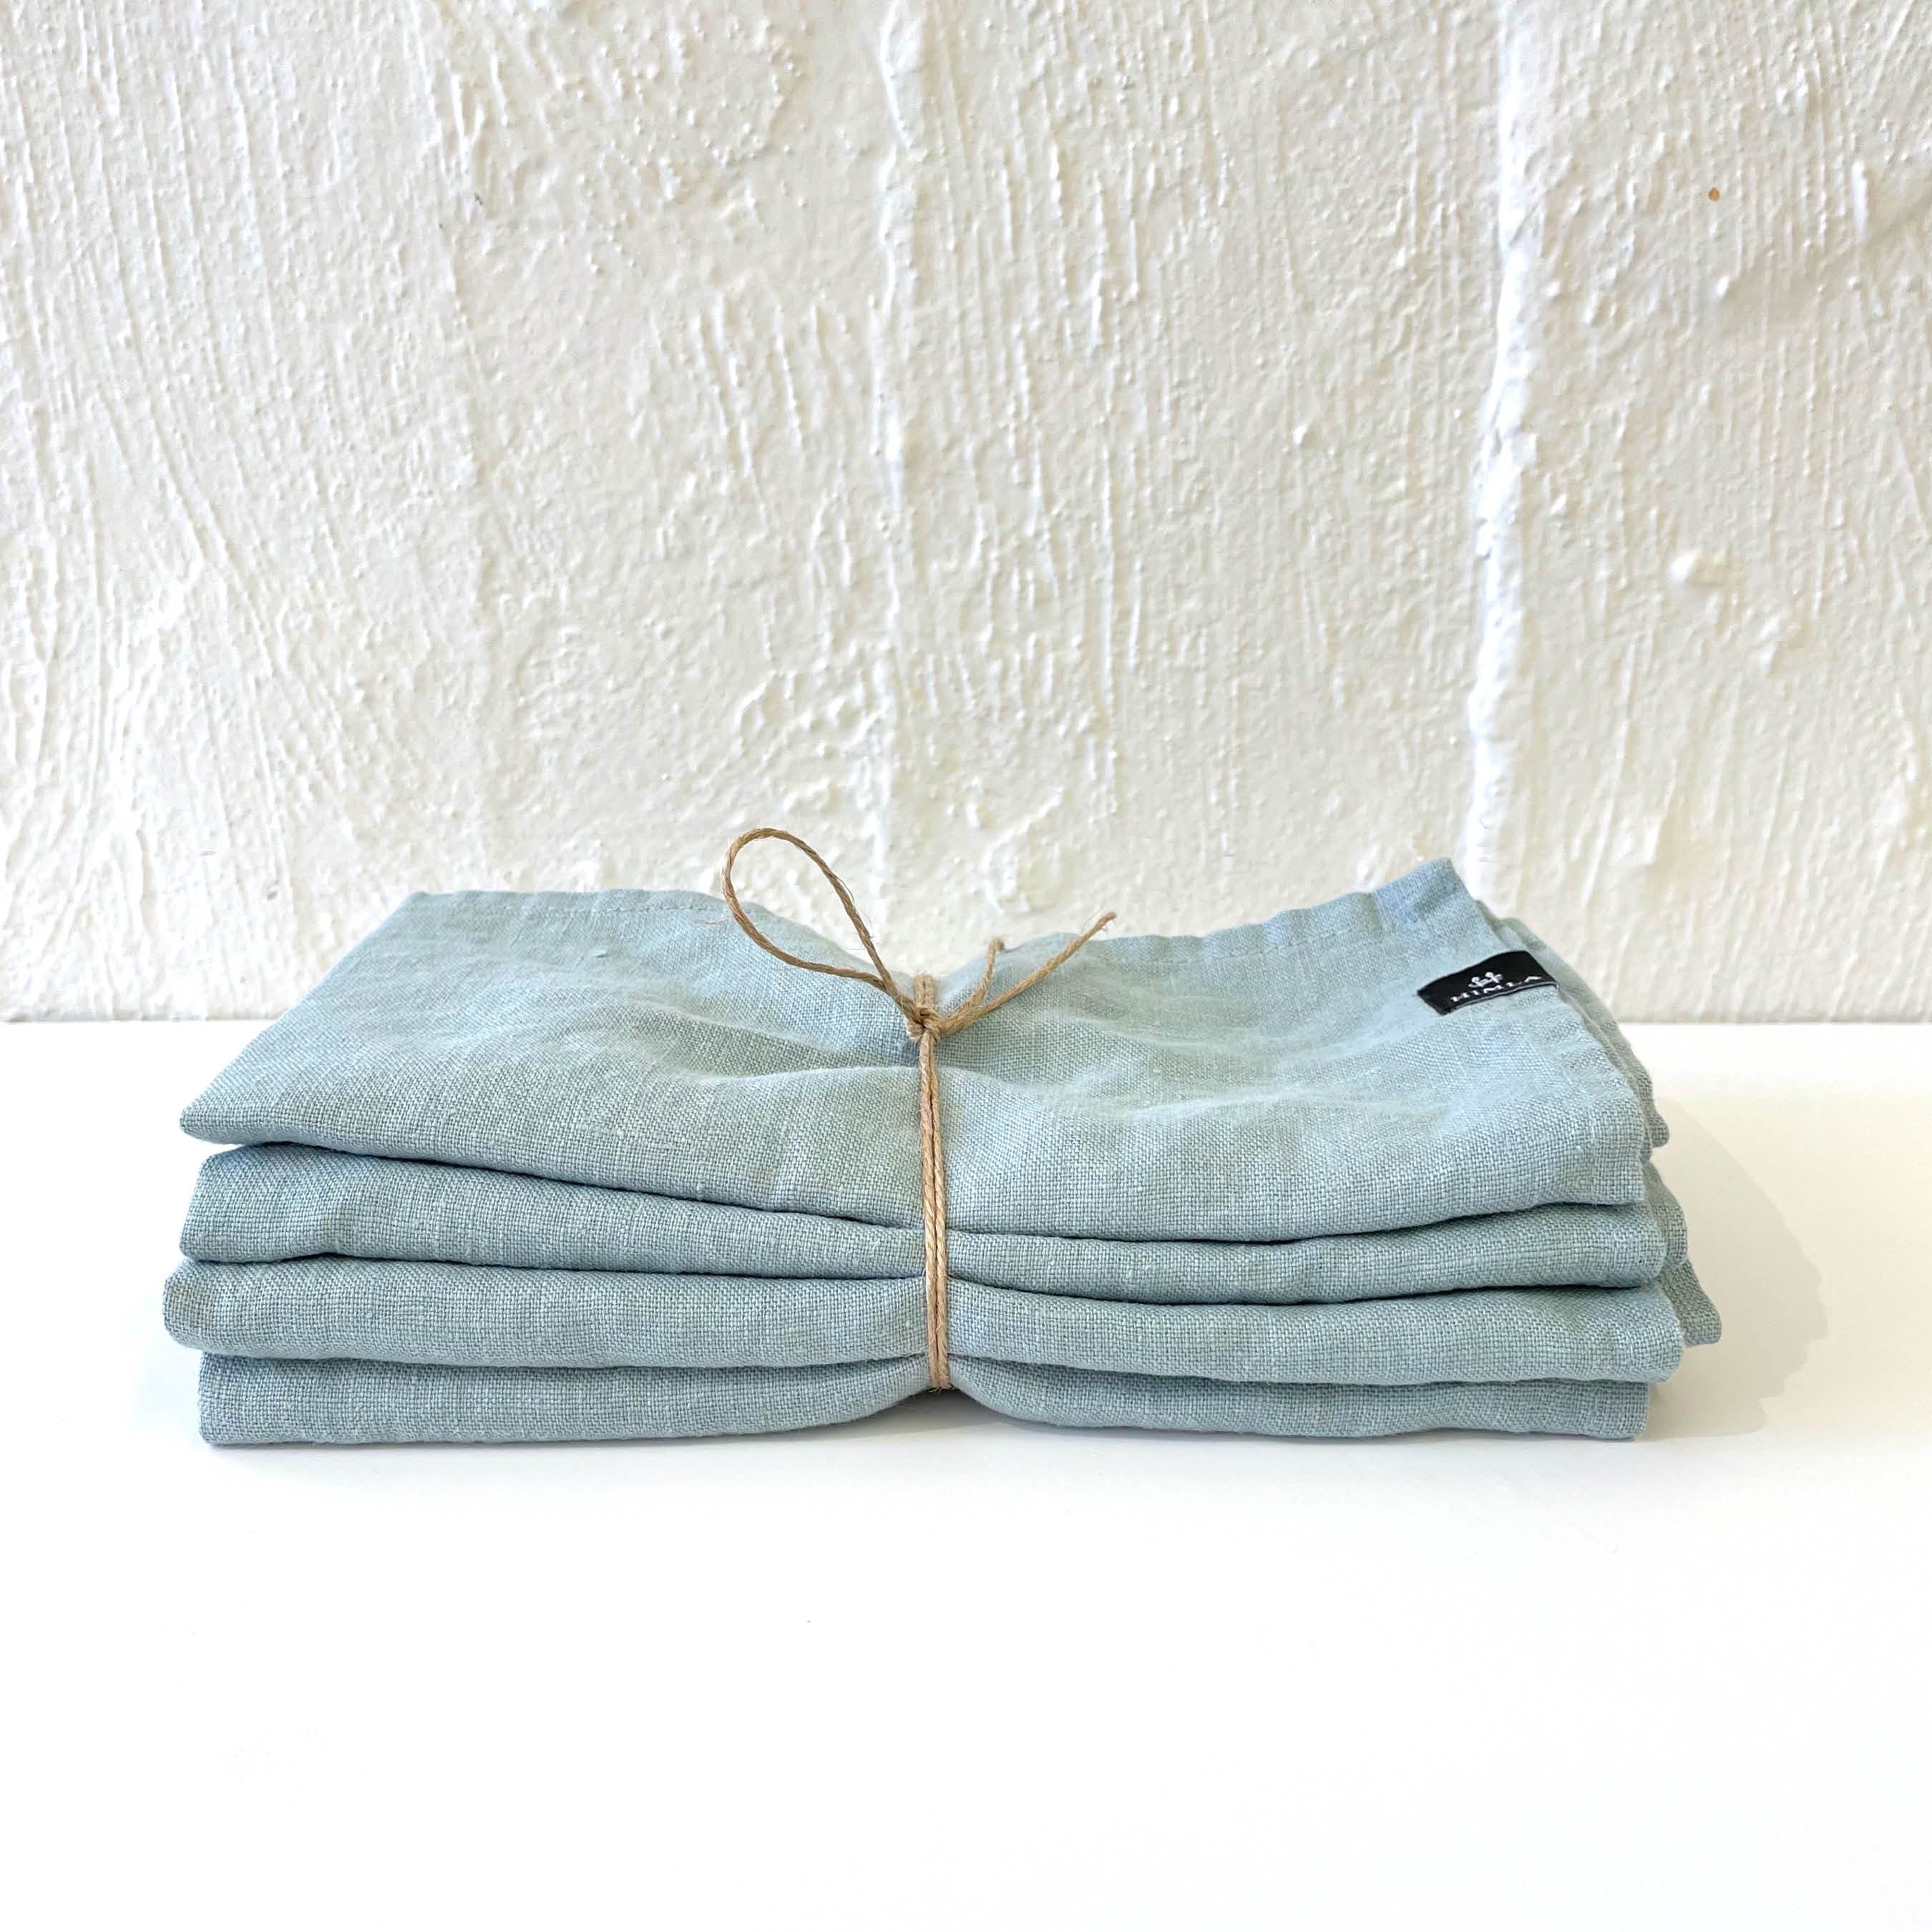 Himla Linen Napkin Balance - Set of 4